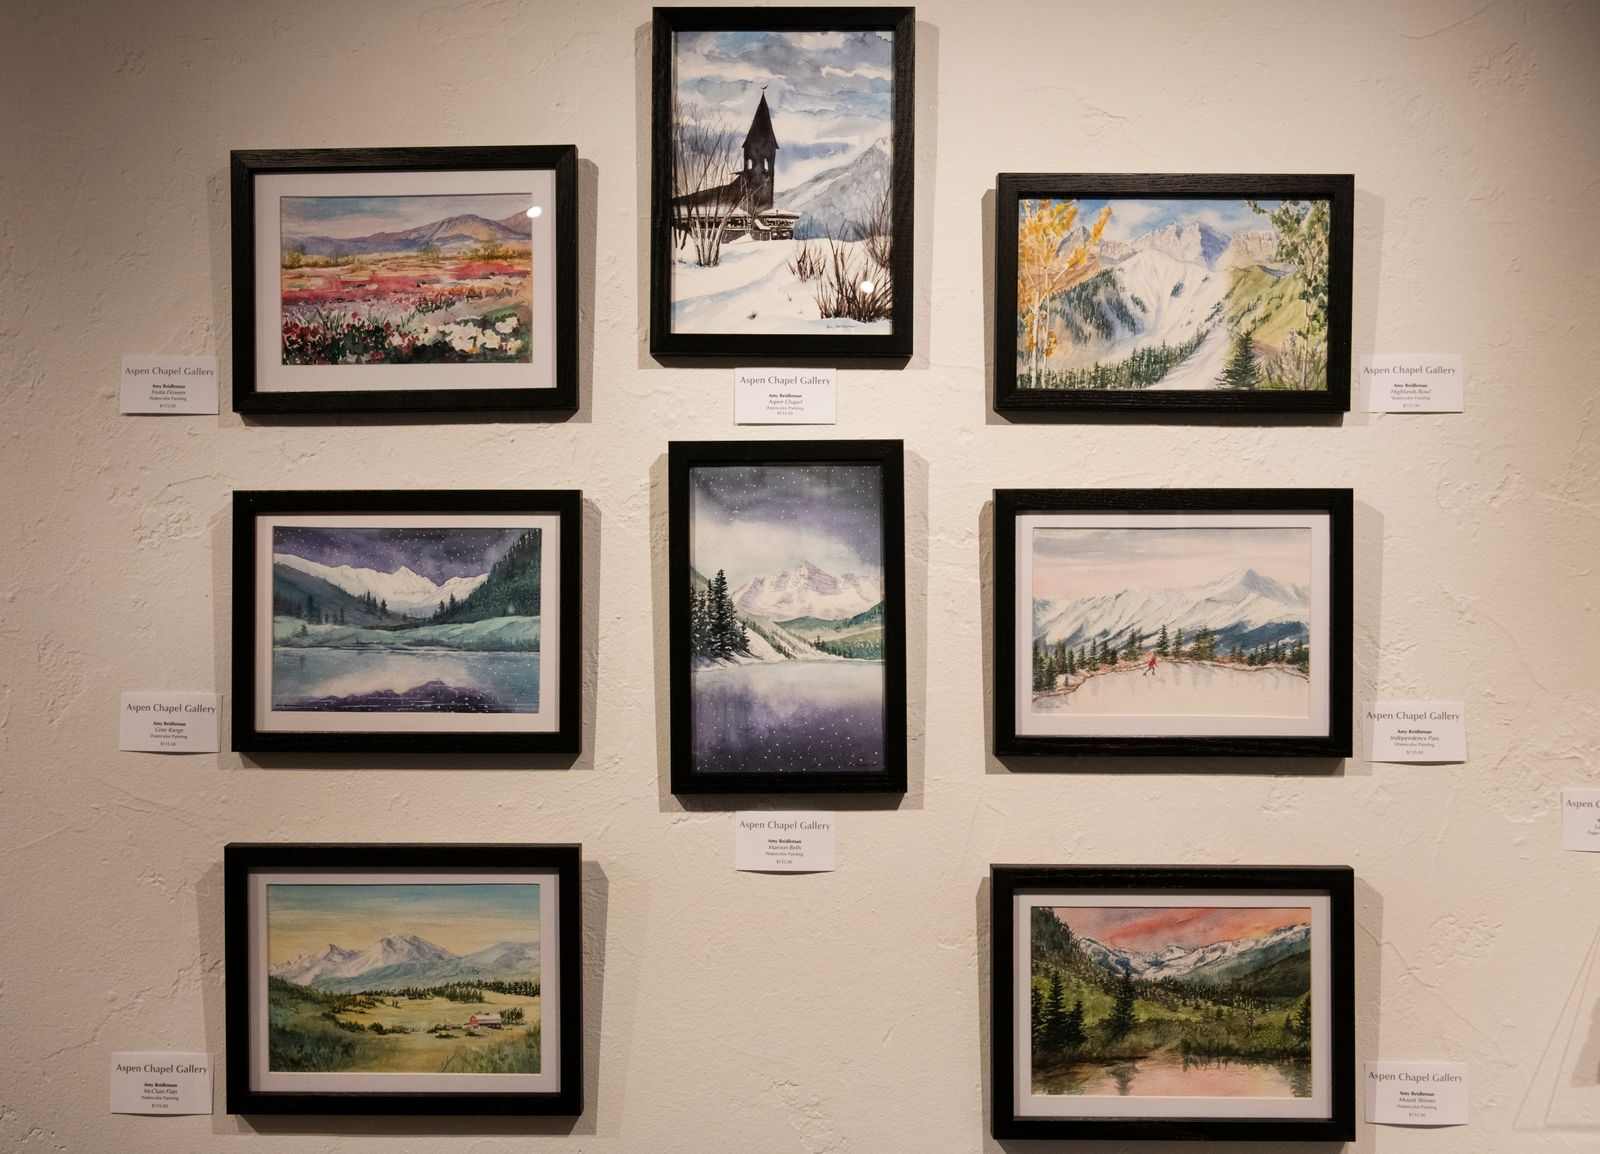 Watercolor paintings by Amy Beidleman are displayed in the Aspen Chapel Gallery for the Small Wonders holiday show and sale on Tuesday, Nov. 17, 2020. (Kelsey Brunner/The Aspen Times)